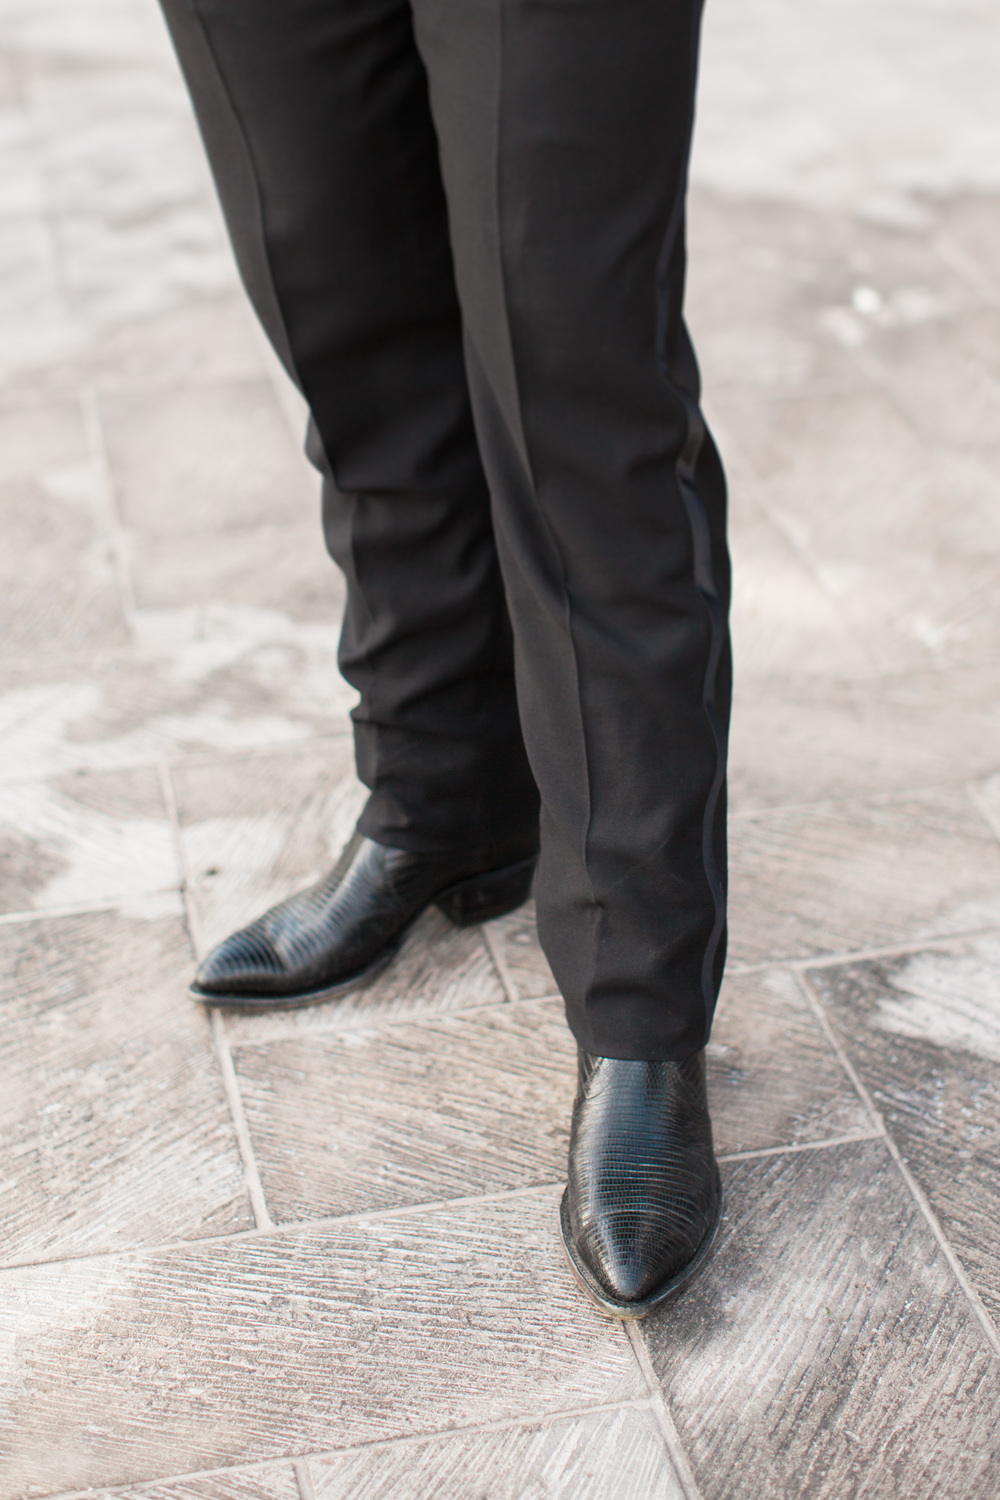 Groom wearing black cowboy boots